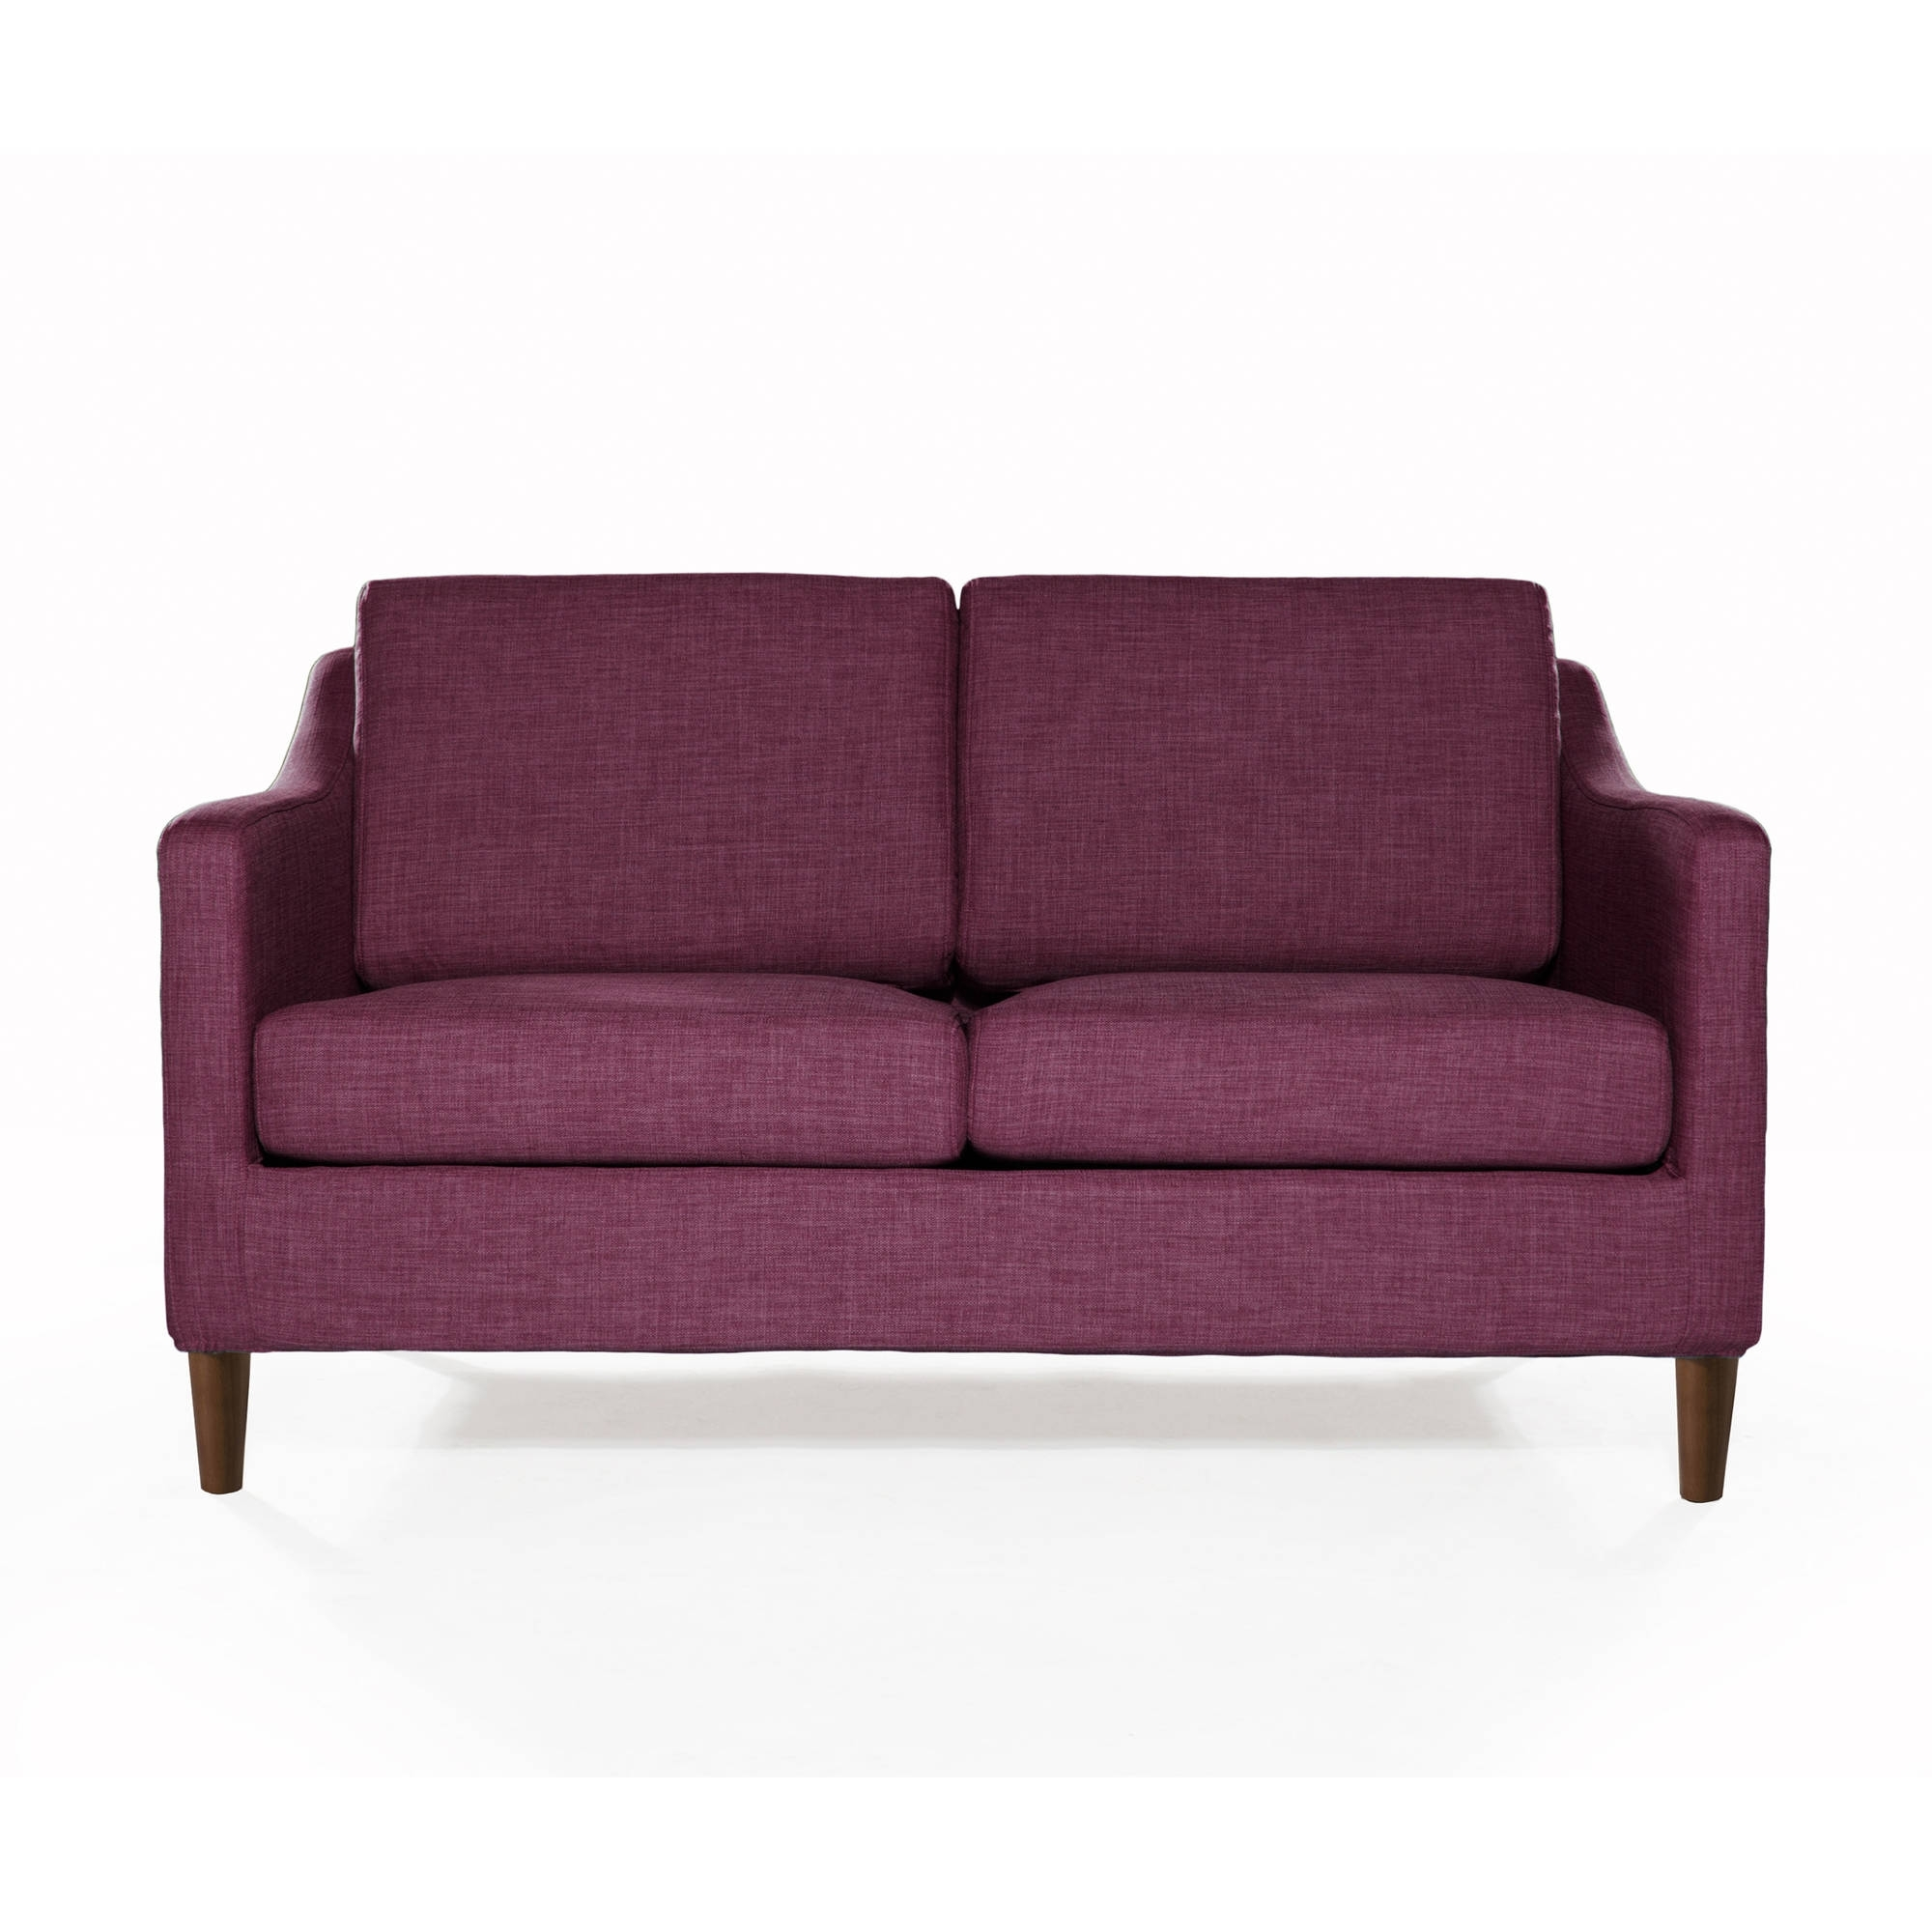 Newest Sectional Sofas Under 600 For Sectional Sofas – Walmart (View 12 of 20)